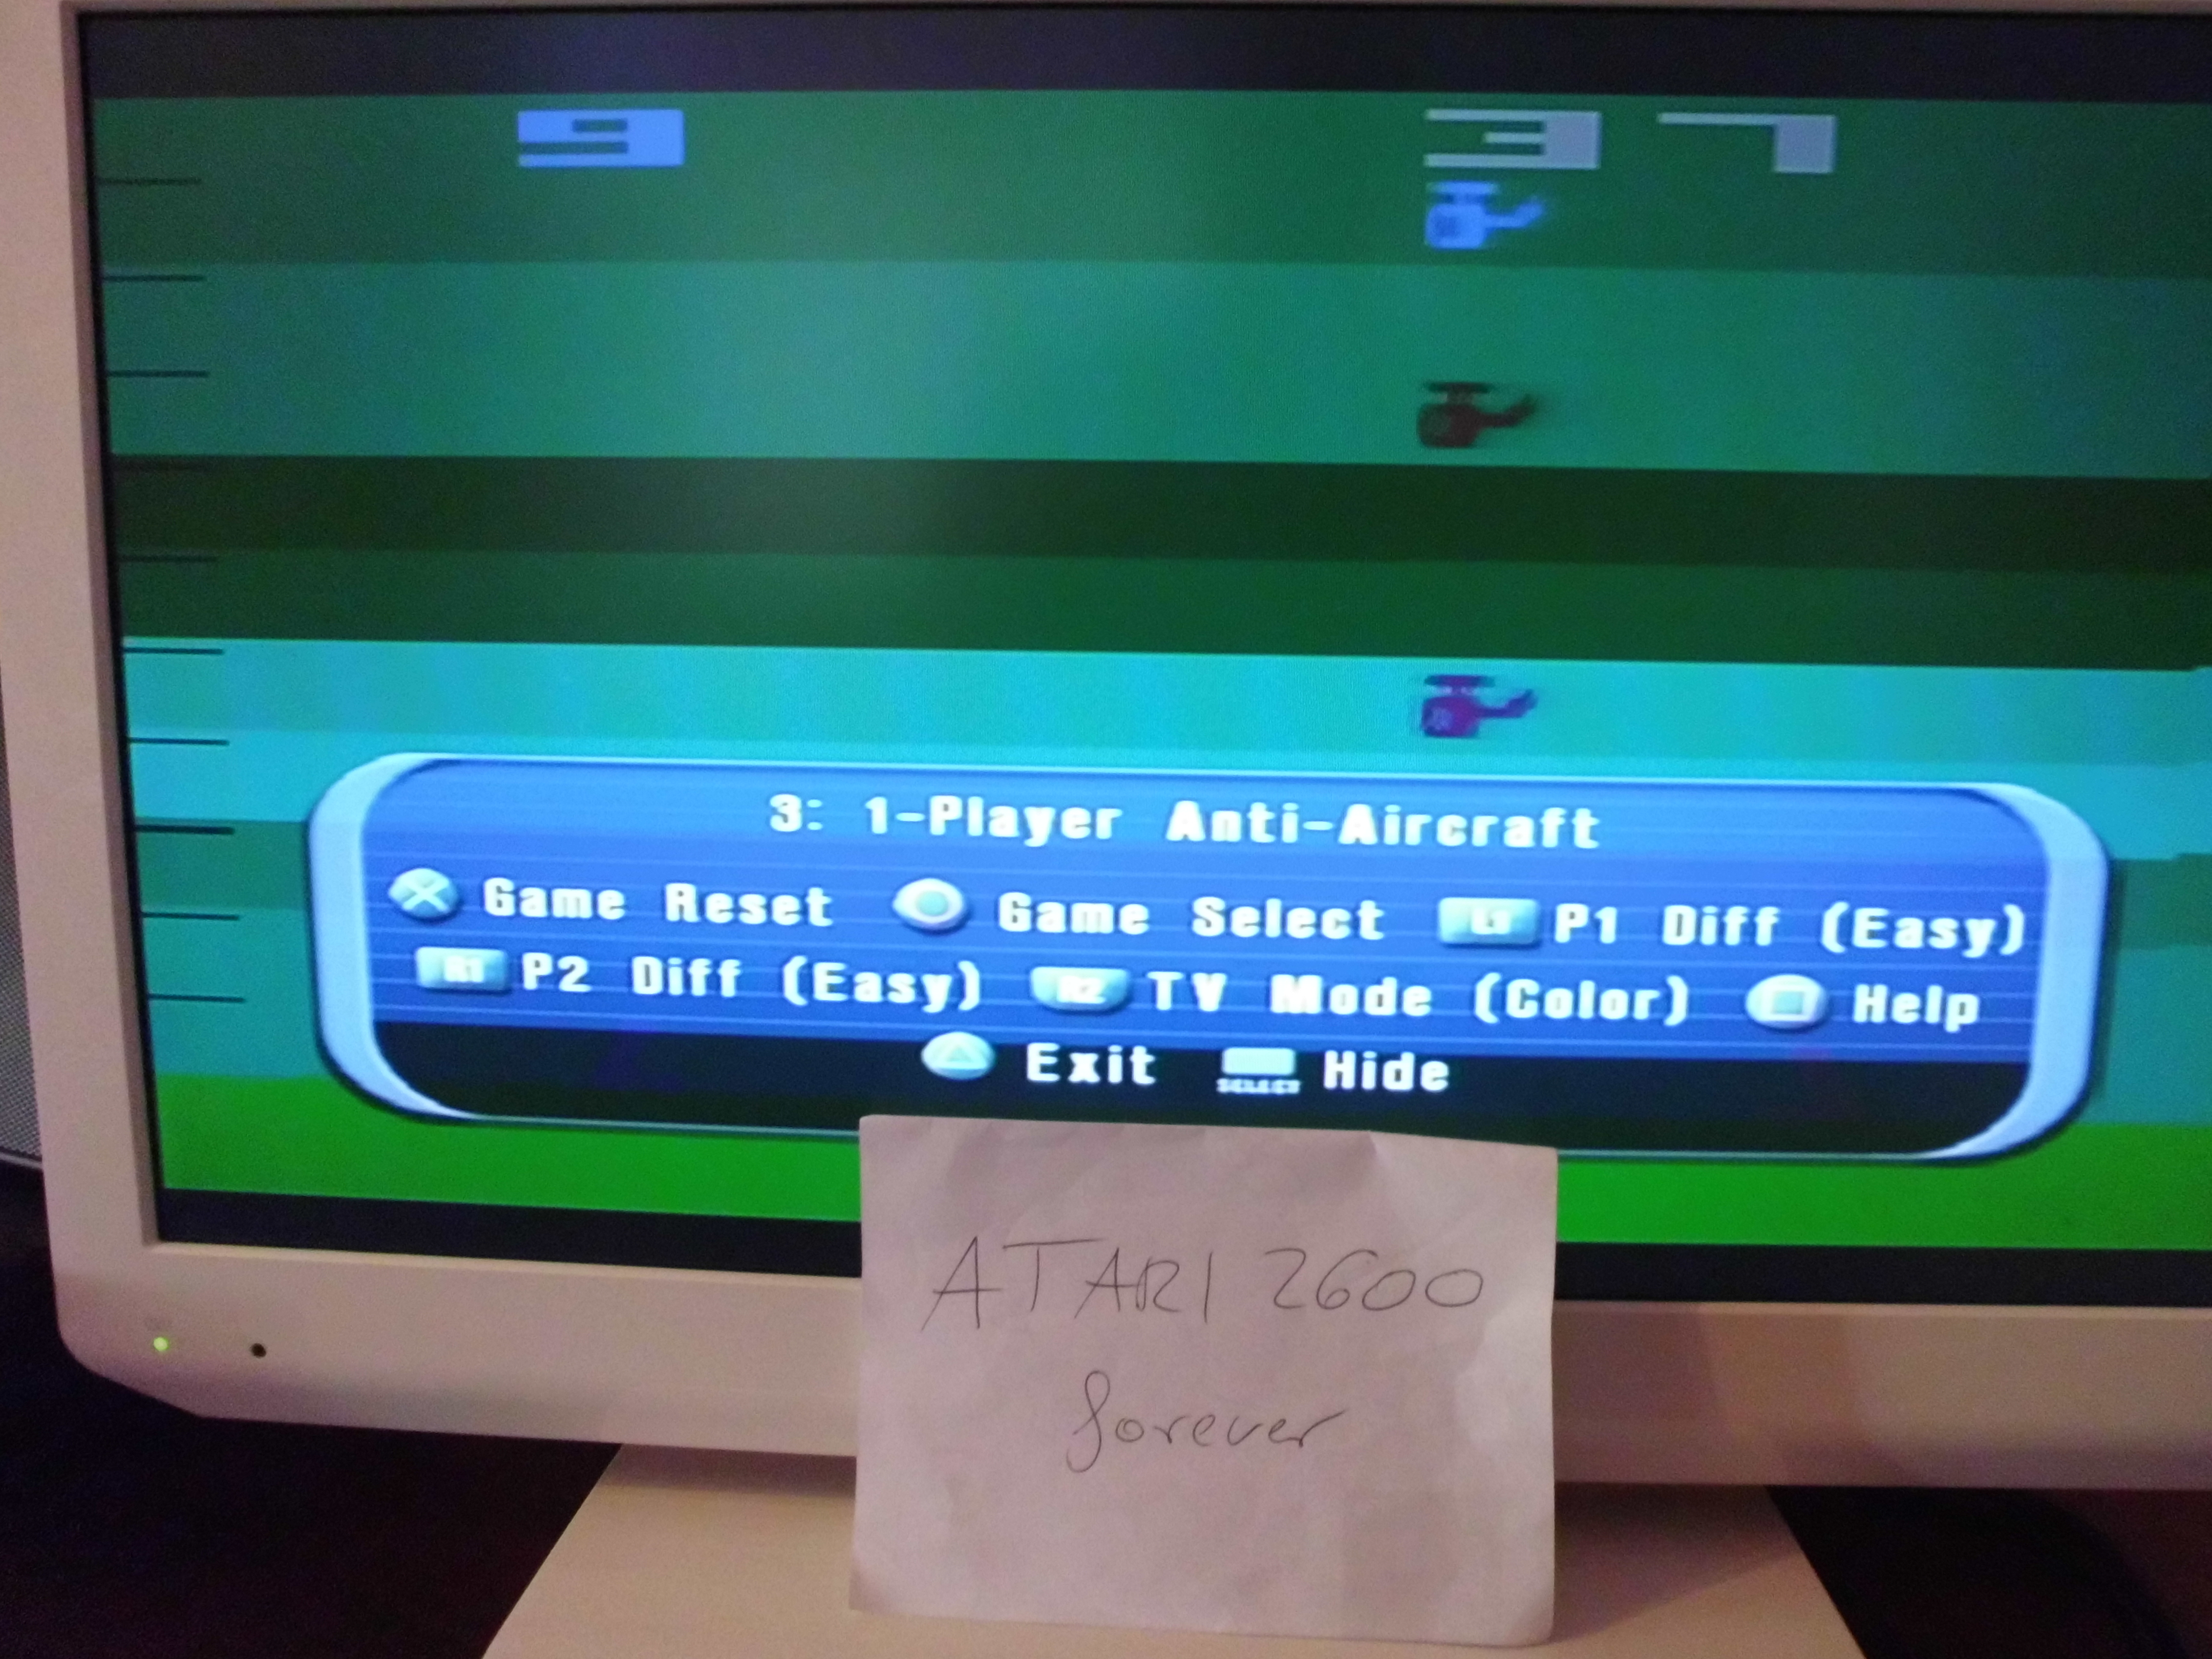 atari2600forever: Atari Anthology: Air-Sea Battle [Game 3B: Point Difference] (Playstation 2) 28 points on 2018-05-14 06:36:28